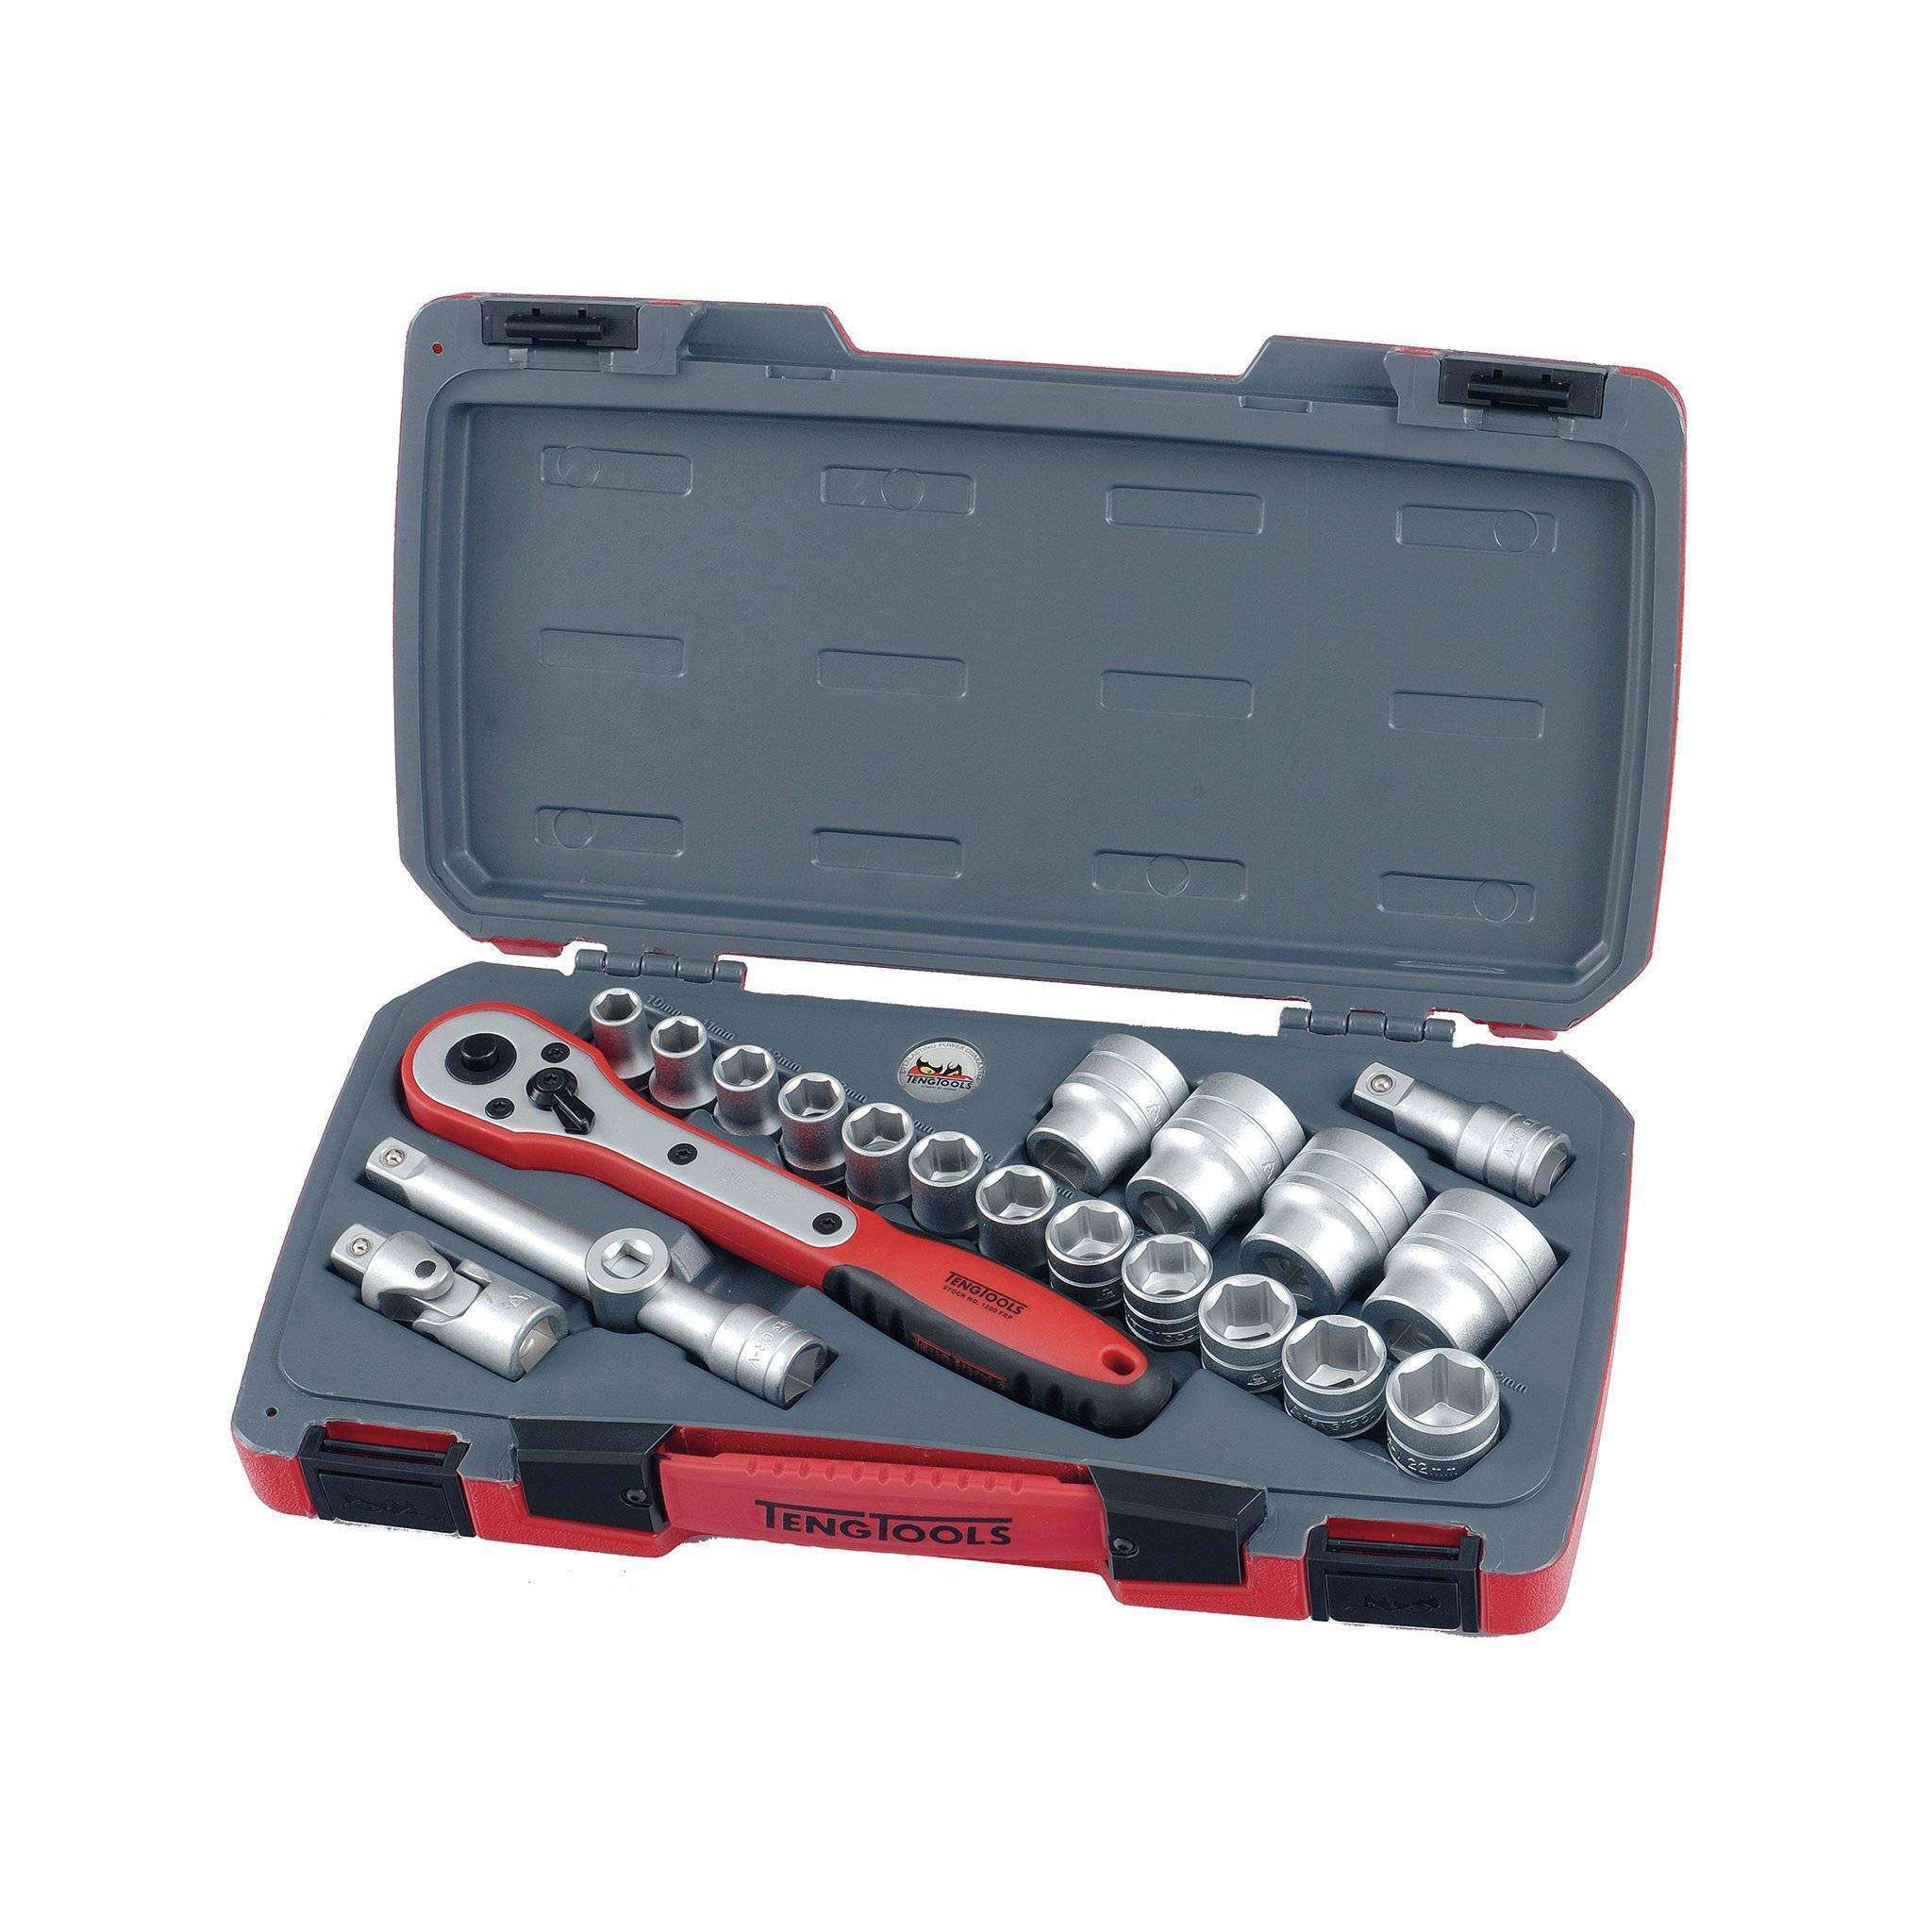 Teng Tools - 21 Piece 1/2 inch Drive Regular 6 Point Socket Set - TEN-O-T12216 - Teng Tools USA